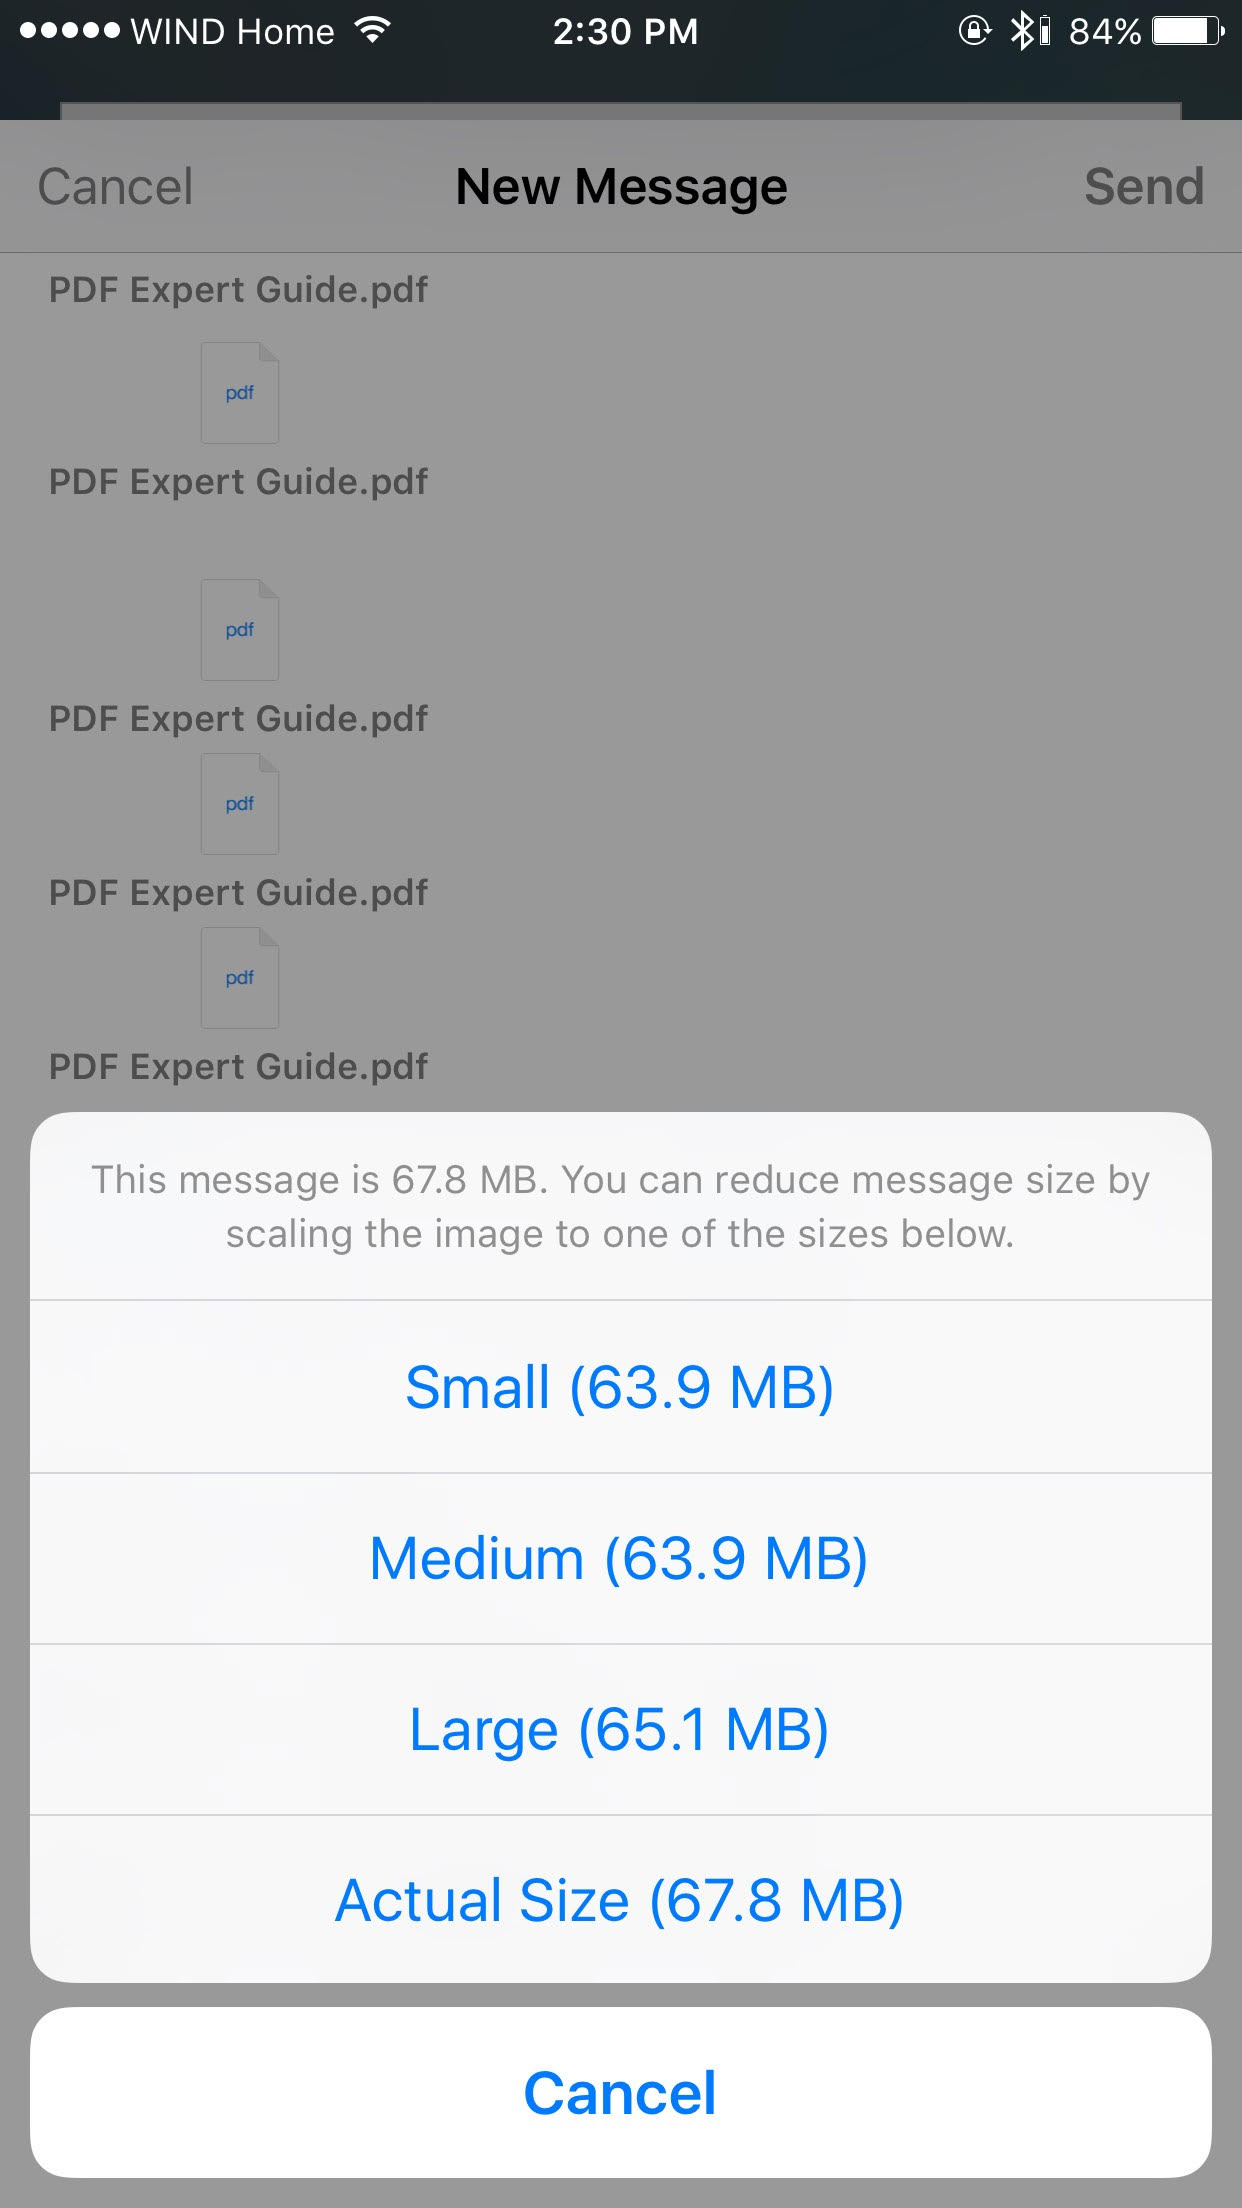 How to Email Big Files From Your iPhone with Mail Drop